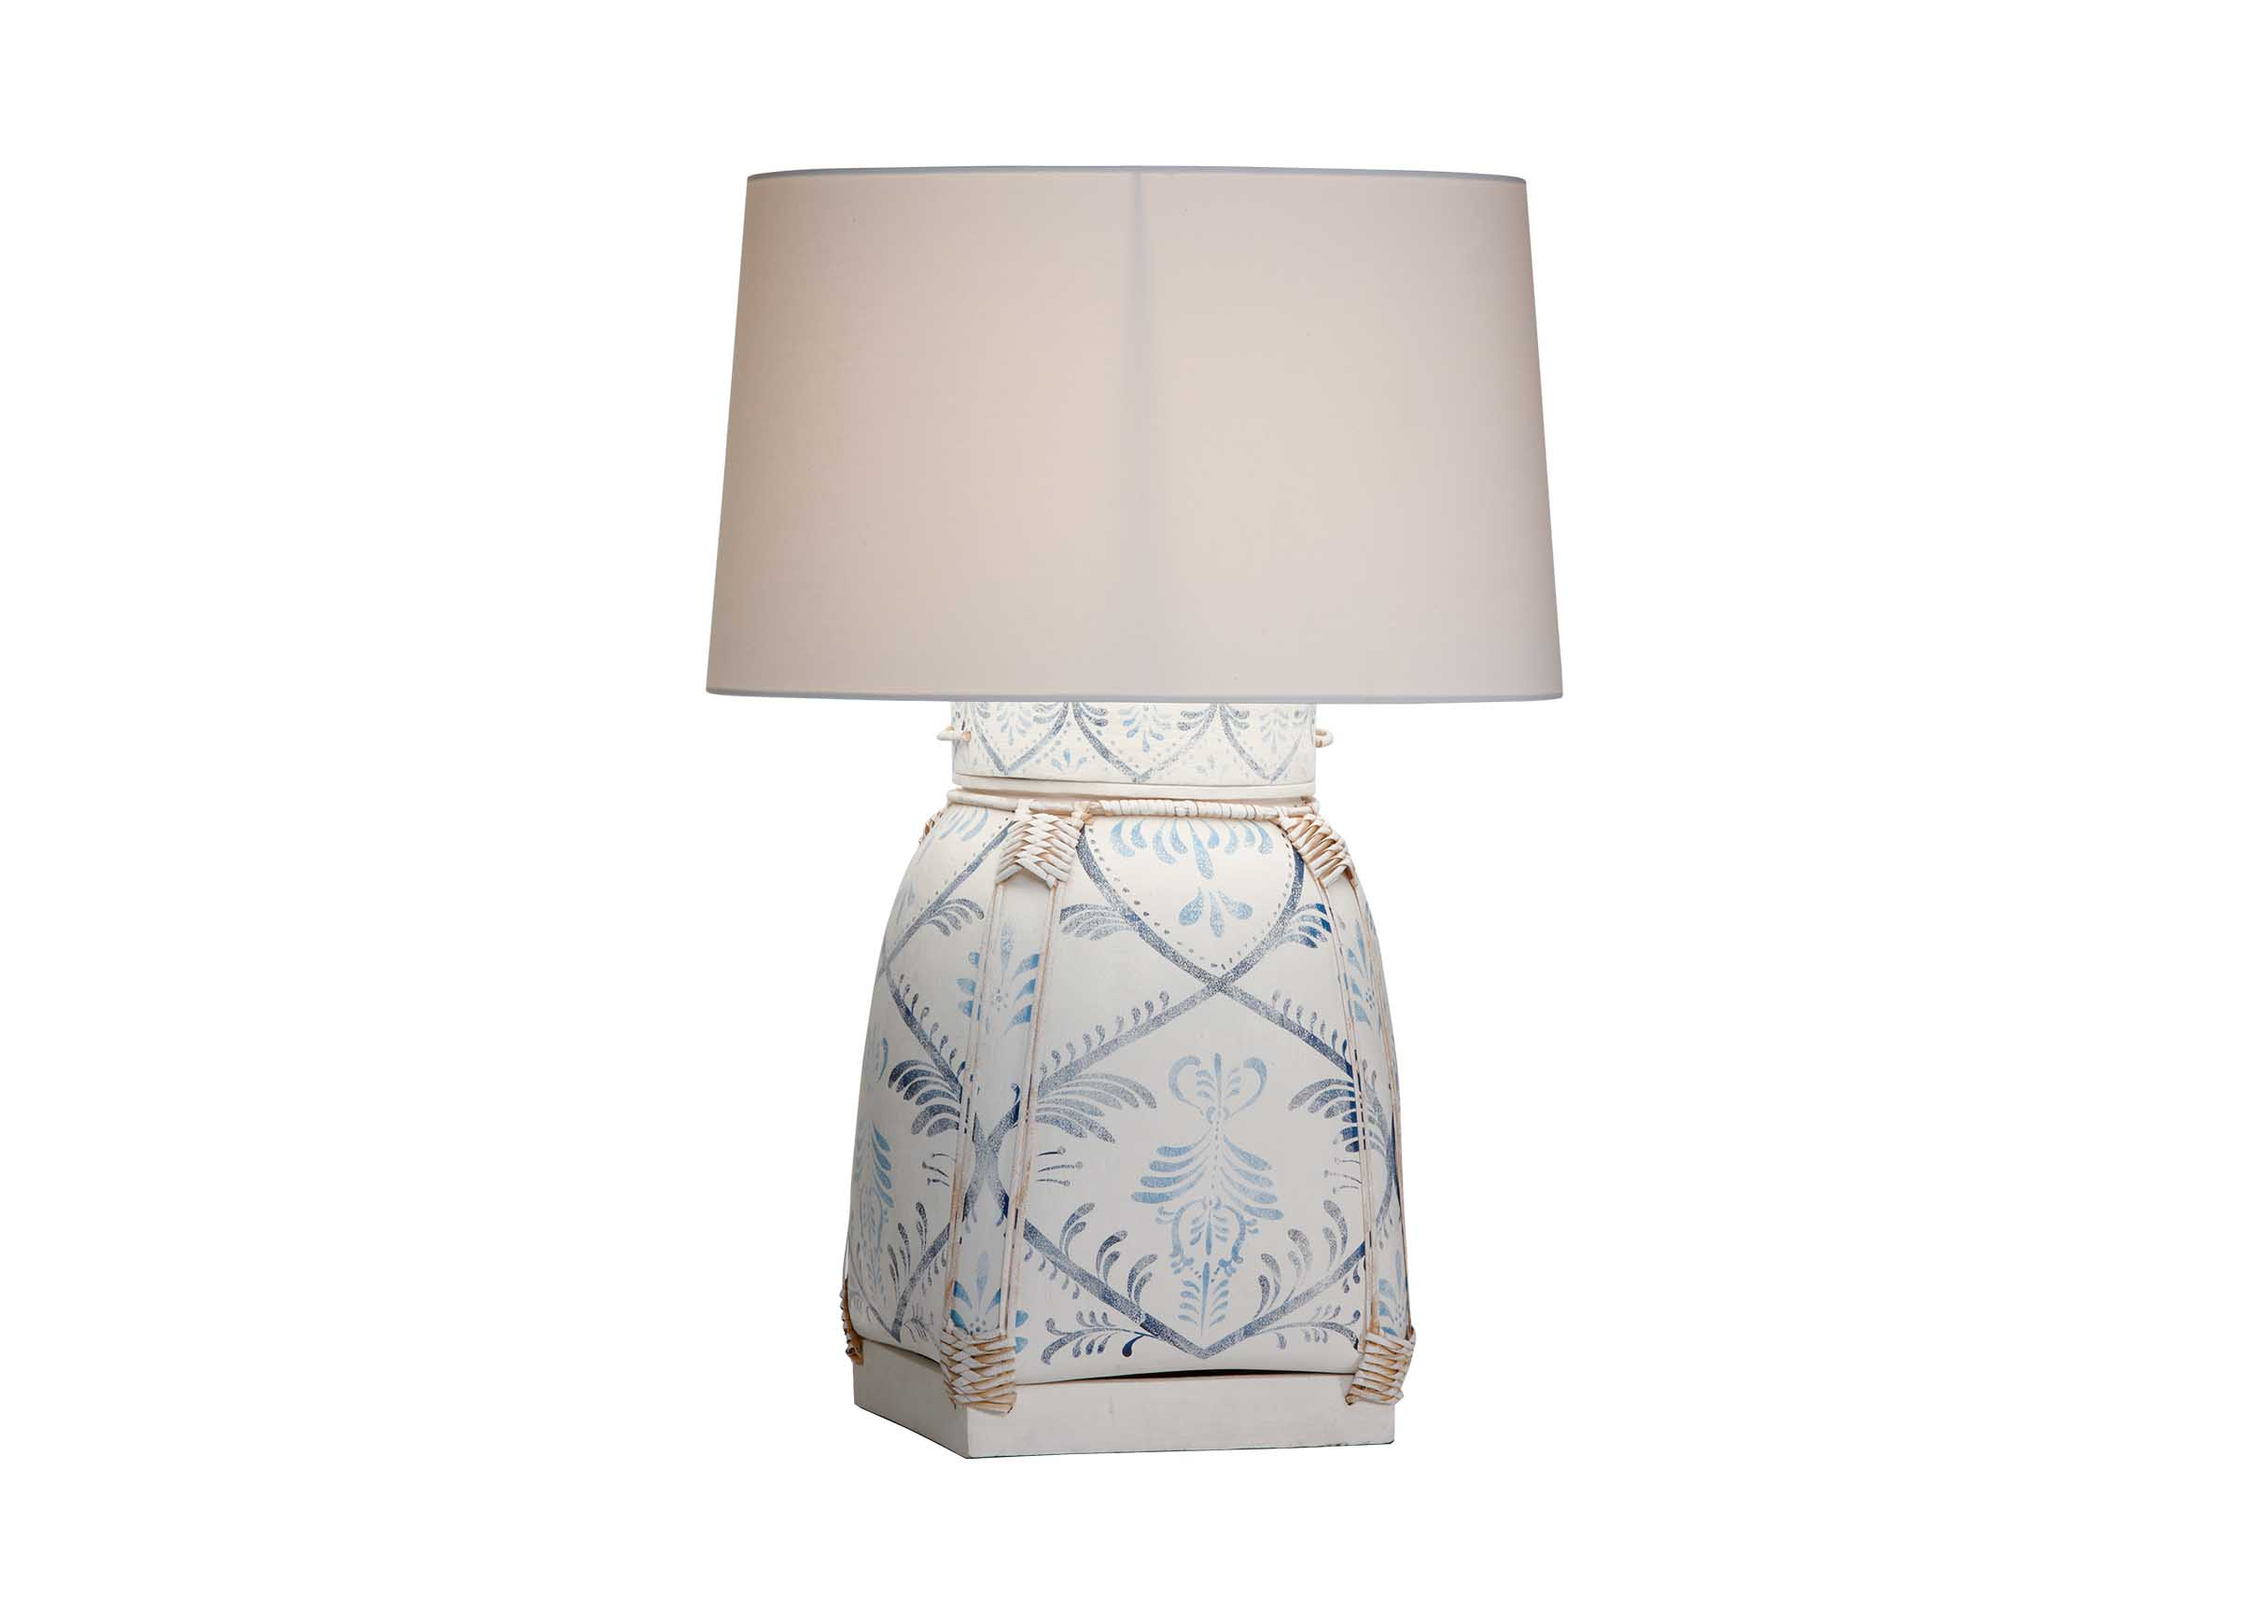 Jasmine Blue Bamboo Table Lamp Table Lamps Ethan Allen inside sizing 2430 X 1740